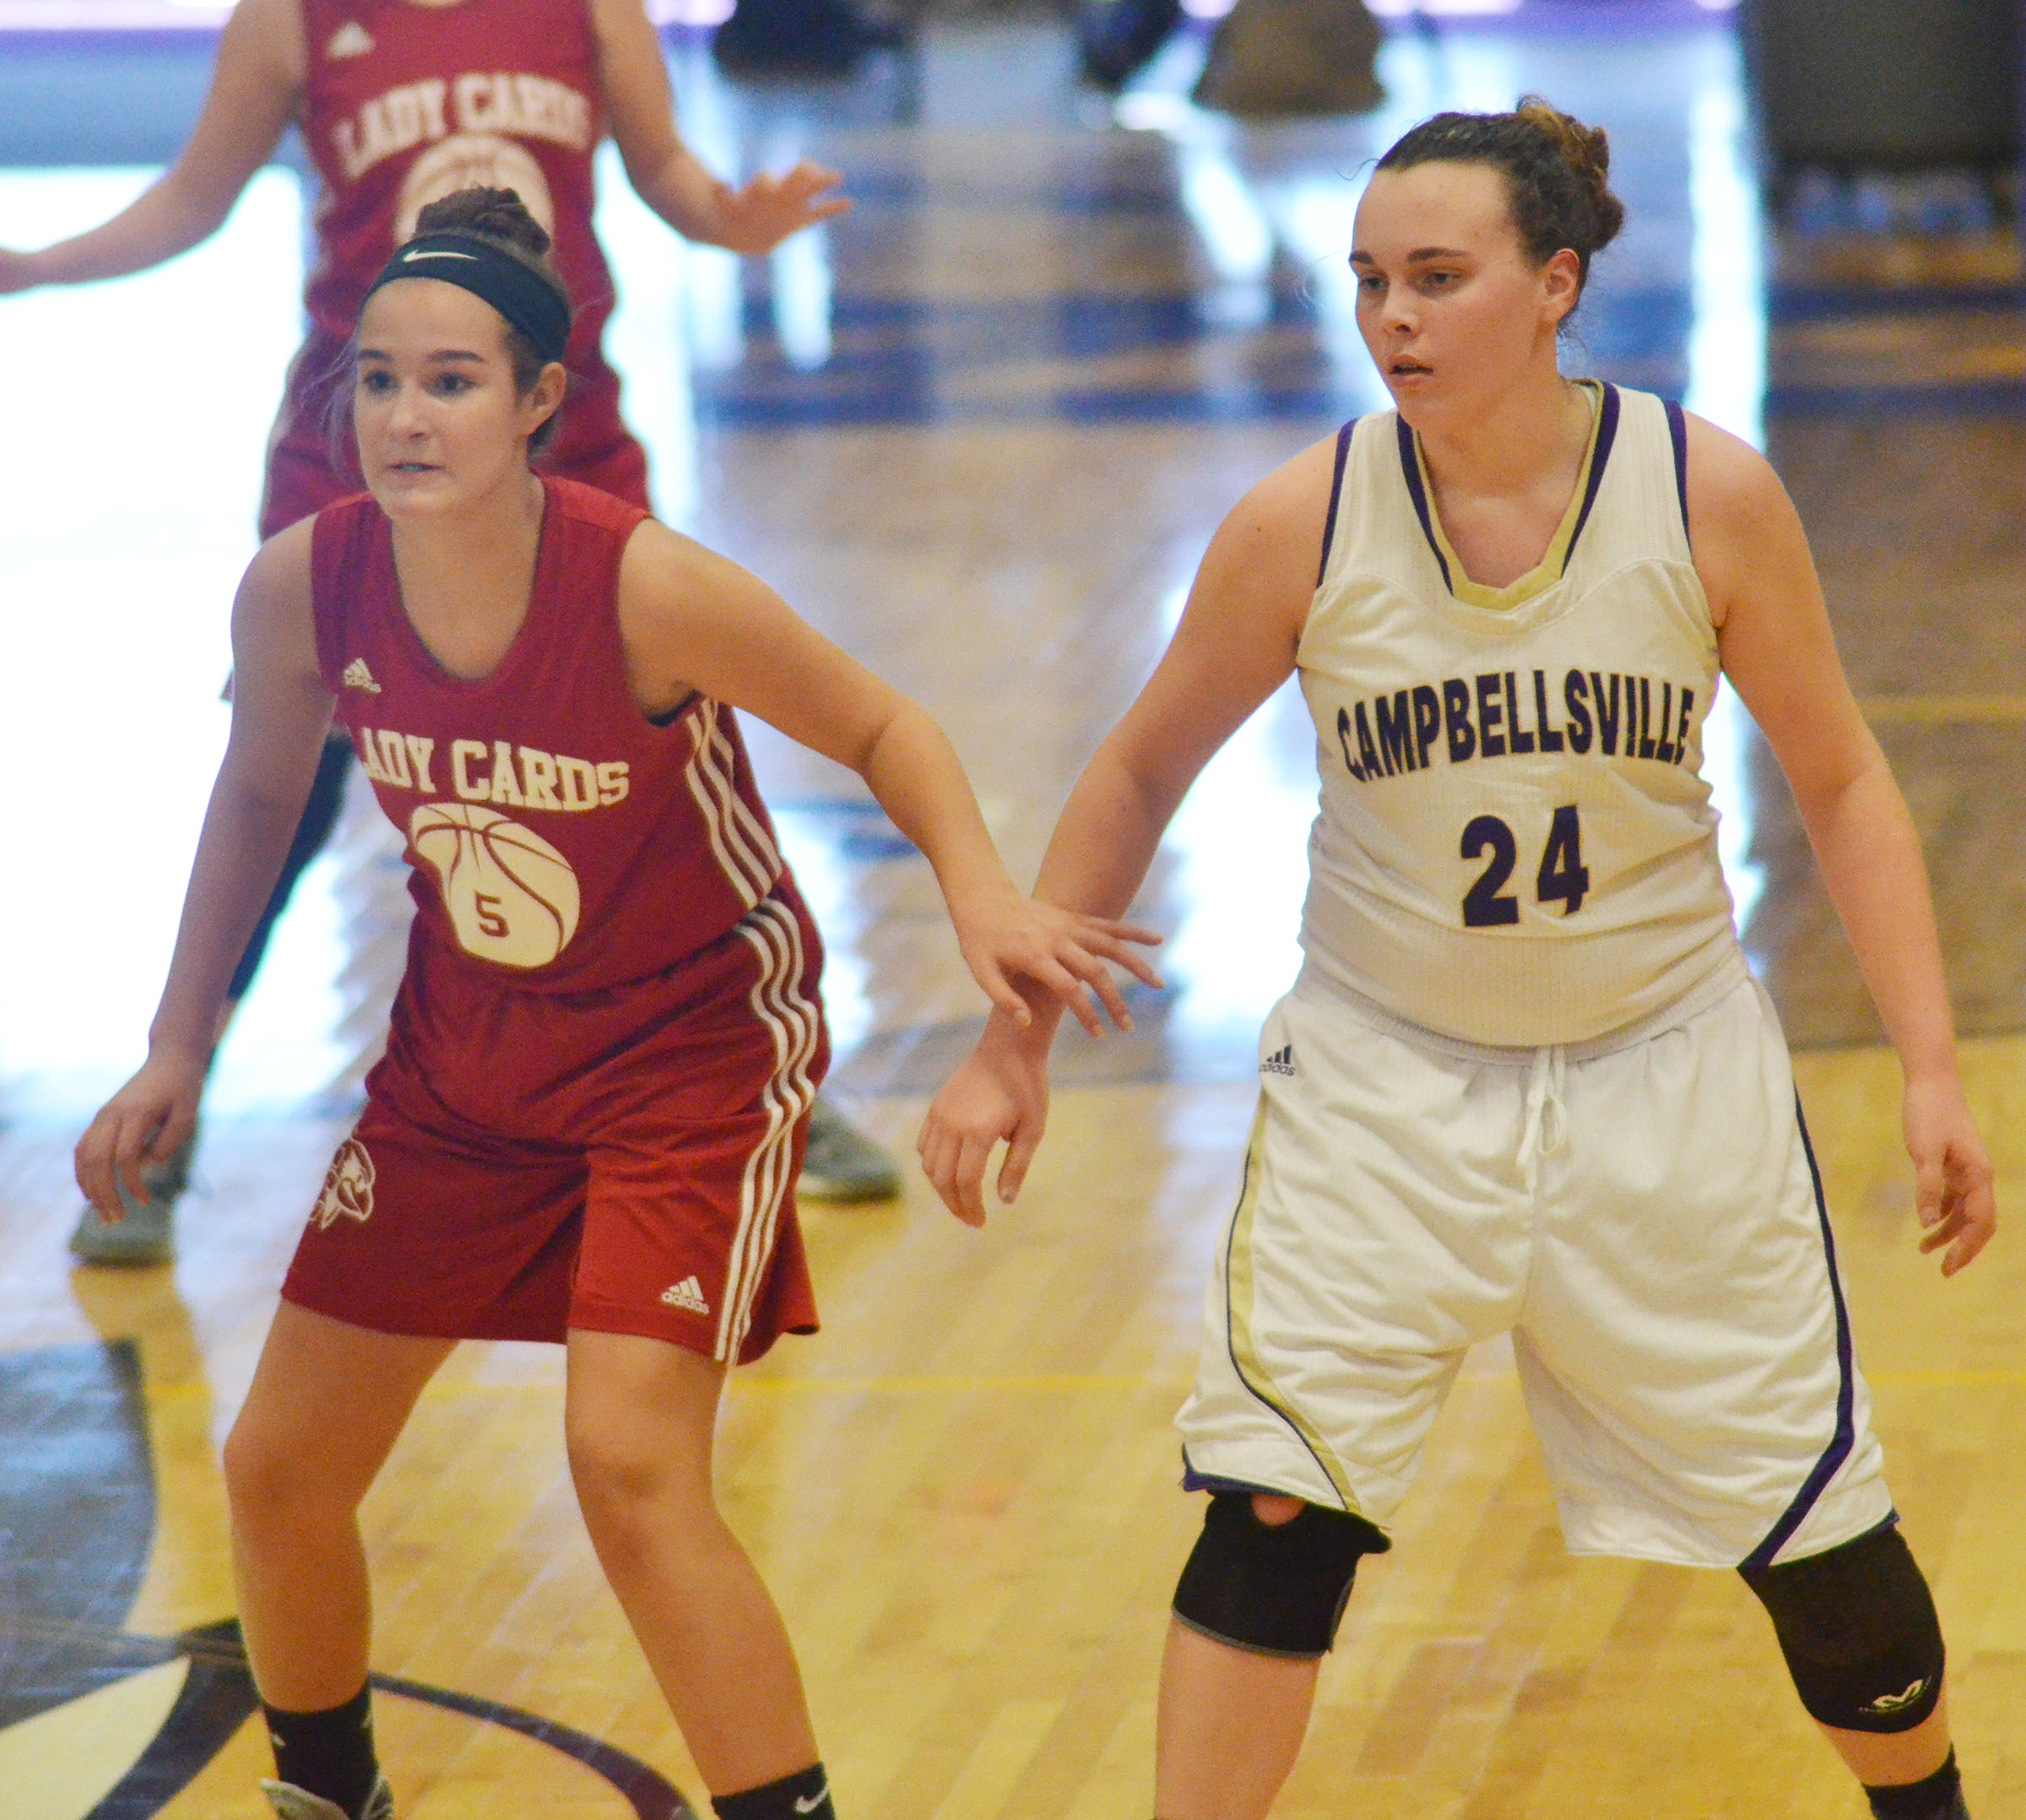 CHS freshman Katelyn Miller plays defense.